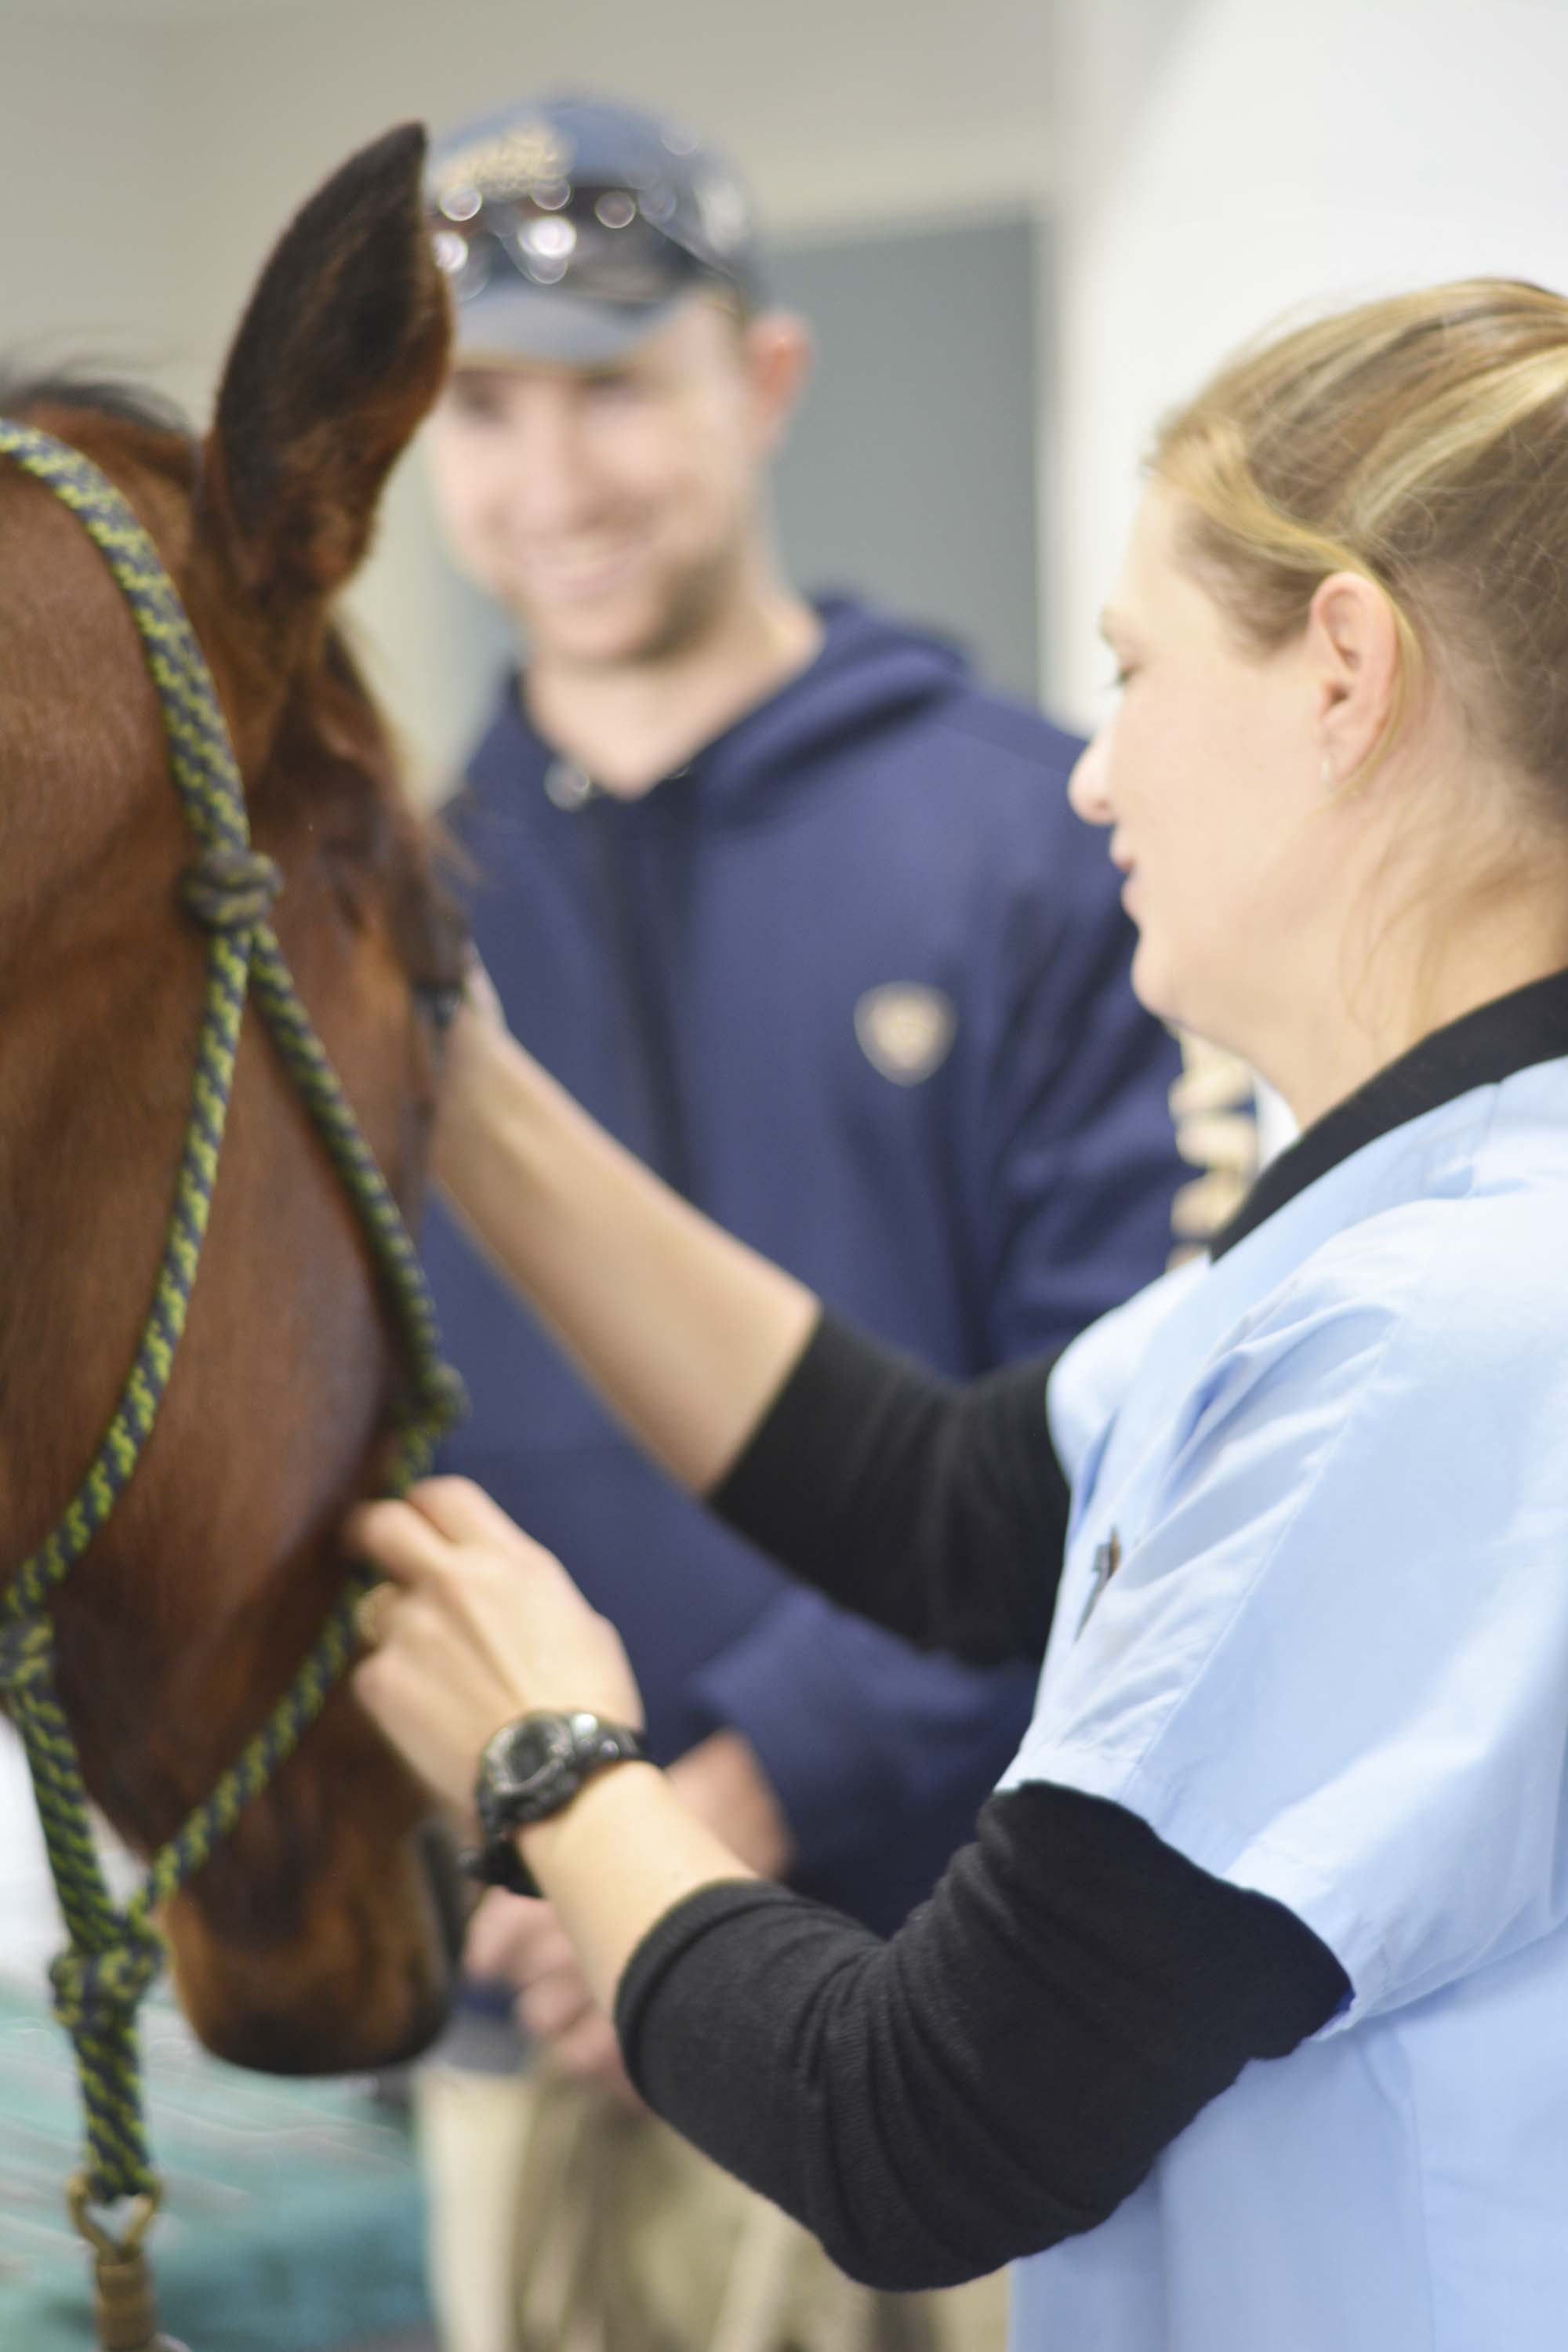 horse dentist Perth, horse dentistry Perth, veterinary dentistry Perth, horse vet dentist, horse veterinary dentistry, equine veterinary dentistry, vet dentist Perth, veterinary dentist Perth, vet dentistry Perth, equine dentist Perth, equine dentistry Perth, equine Dentistry WA, equine vet dentist, Kirsten Jackson, Kirsten Jackson Dentist, Dr Kirsten Jackson, Kirsten Jackson horse dentist, Kirsten Jackson veterinary dentist, Horse dentist Forrestdale, Vet dentist Forrestdale, Veterinary dentistry Forrestdale